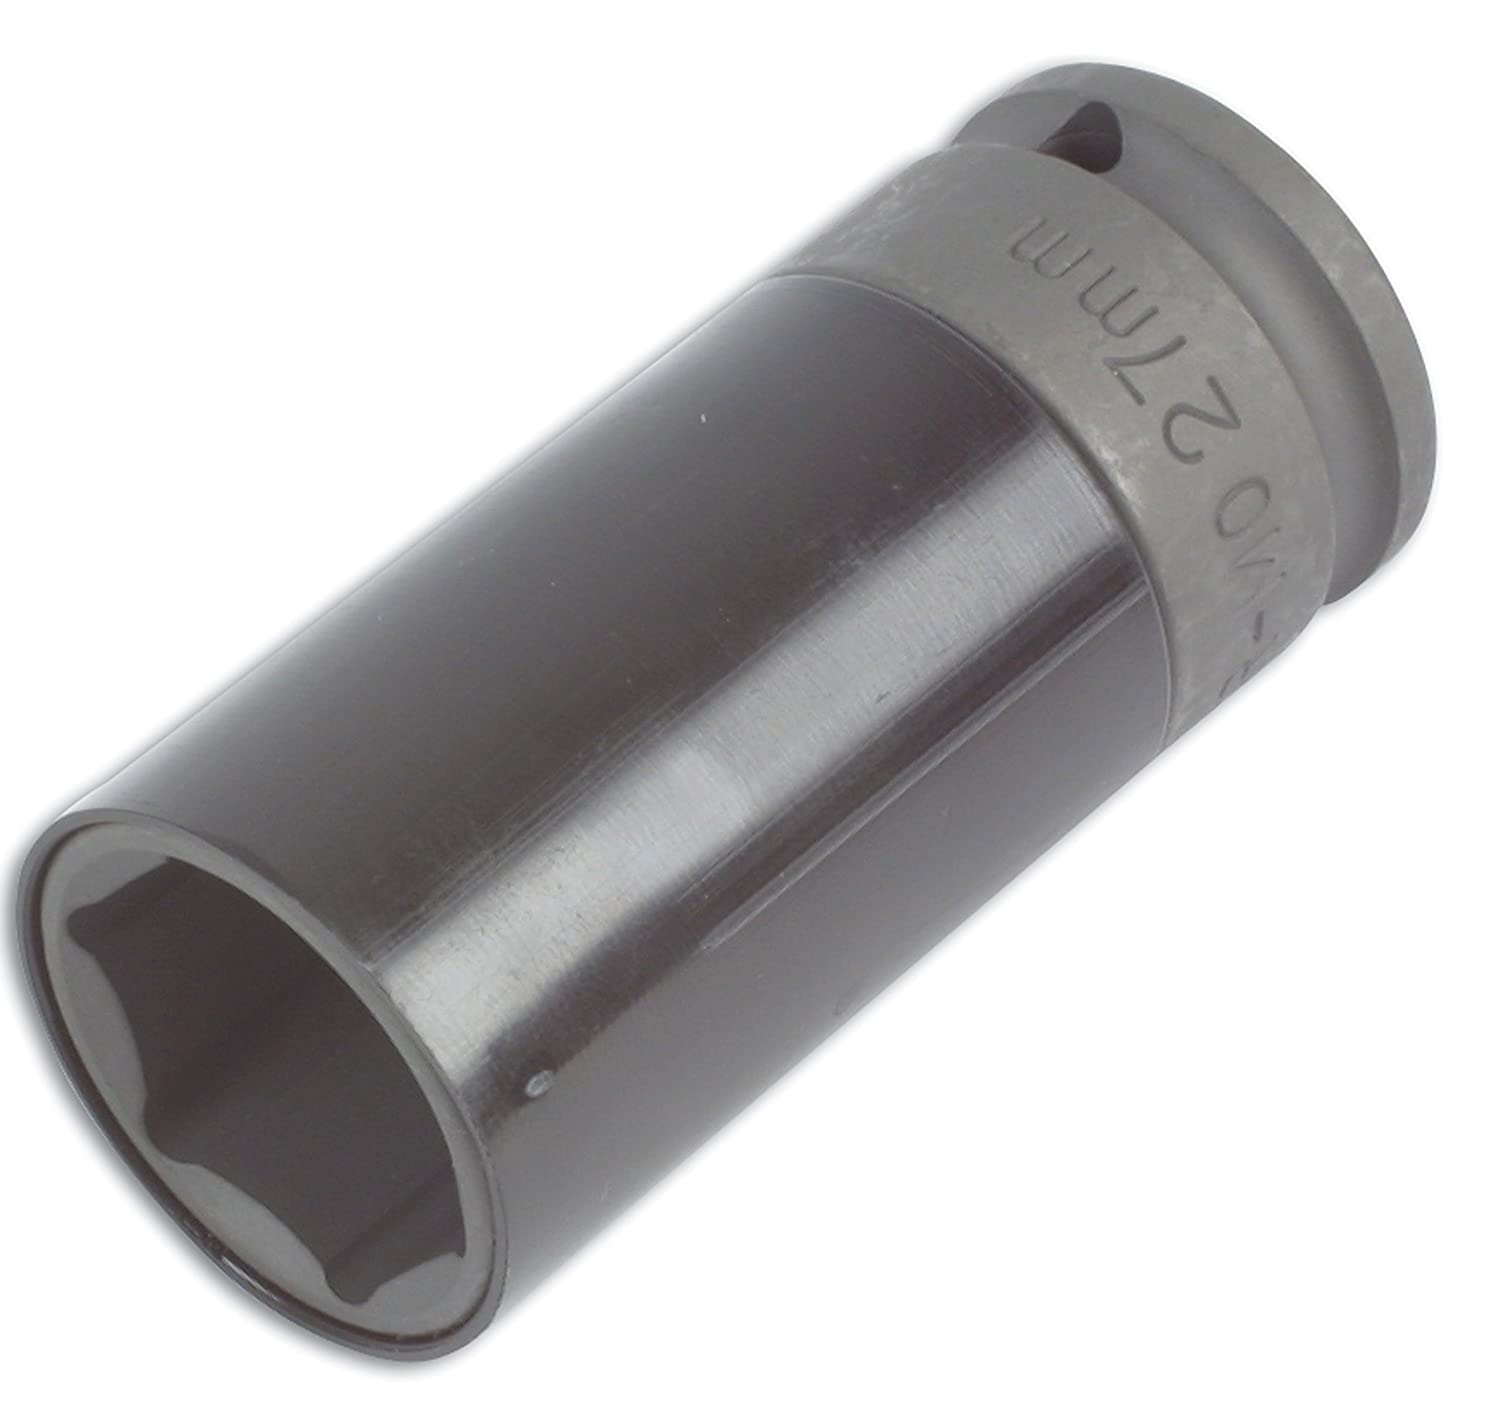 Laser 3641 Alloy Wheel Nut Socket 27mm Tool Connection (EU)